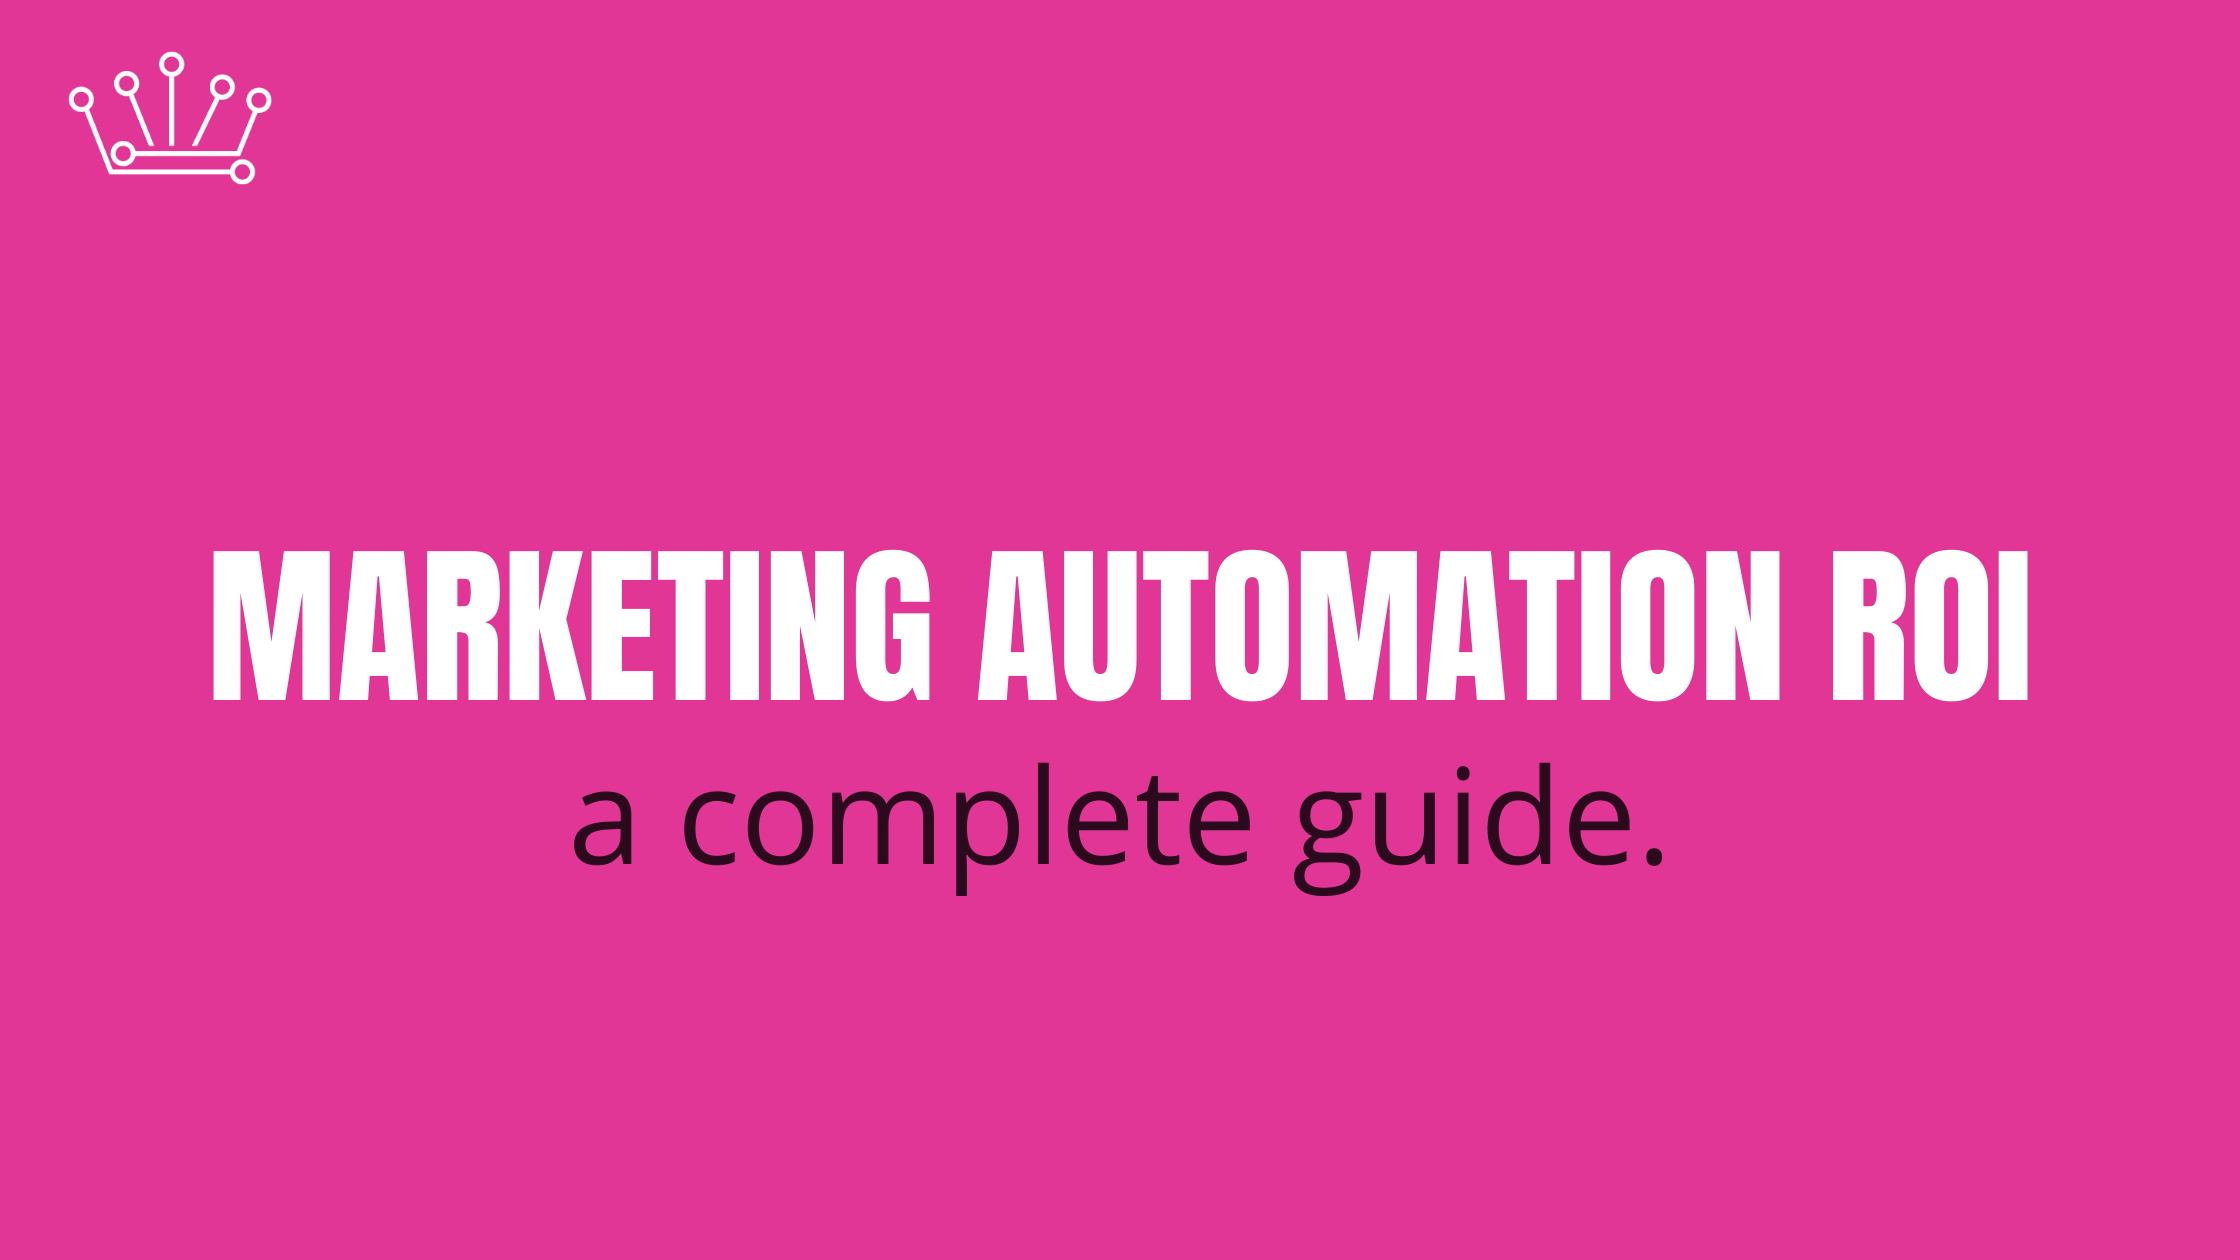 Ultimate Guide to Marketing Automation ROI and Maximizing its Potential